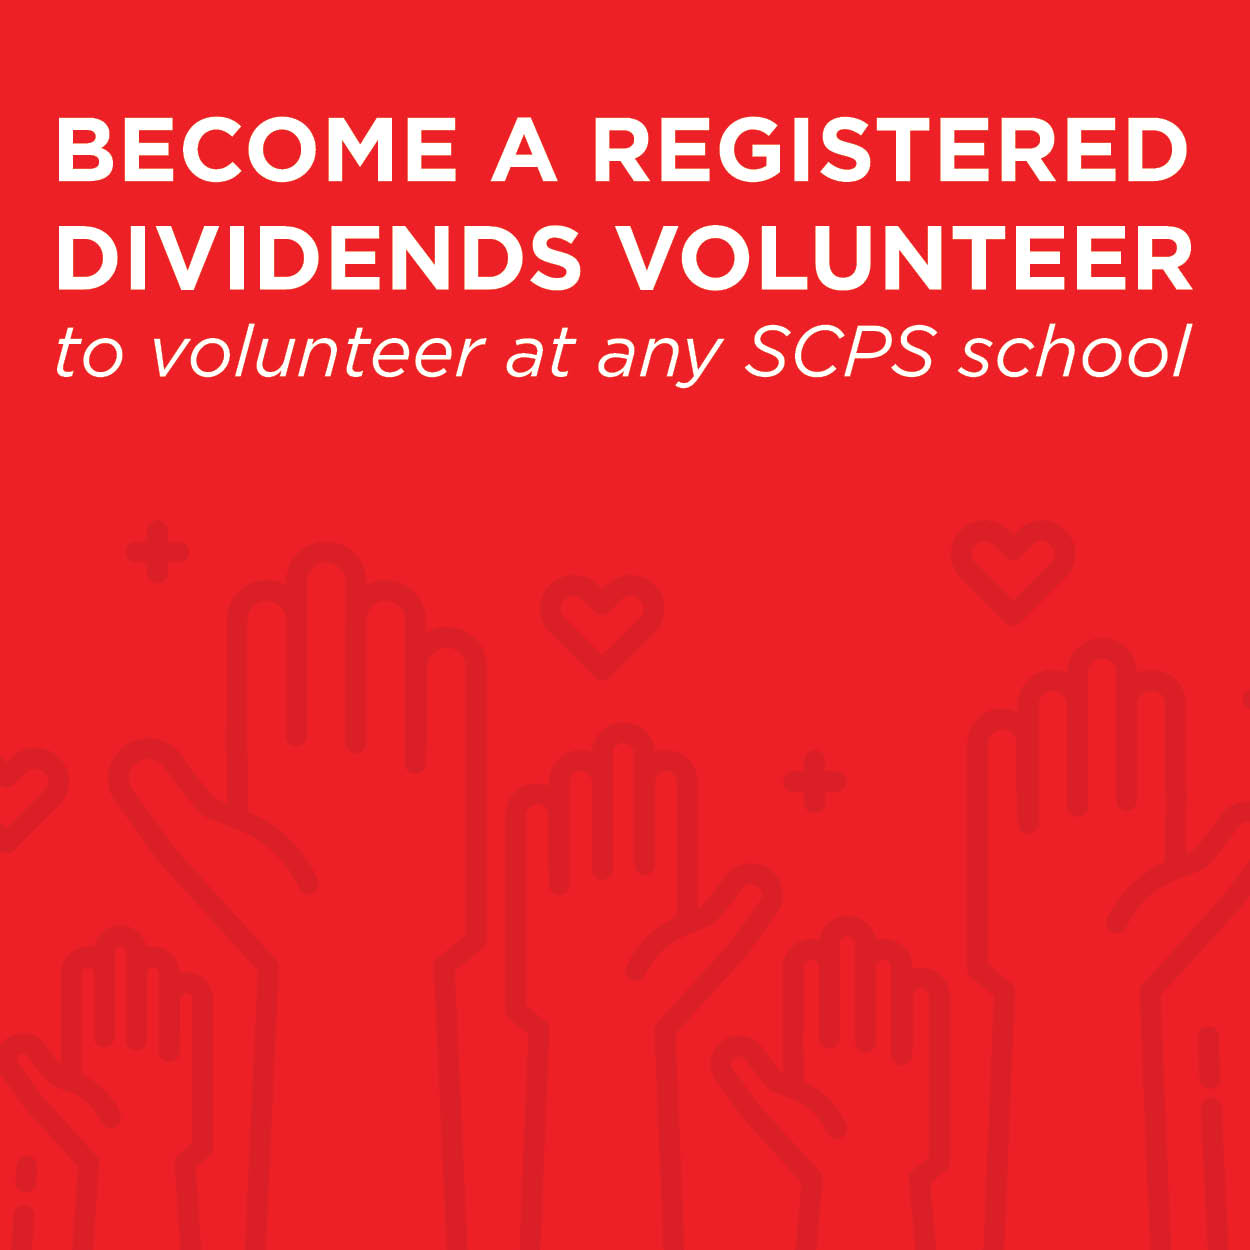 Become A Registered Dividend Volunteer - Link to Website